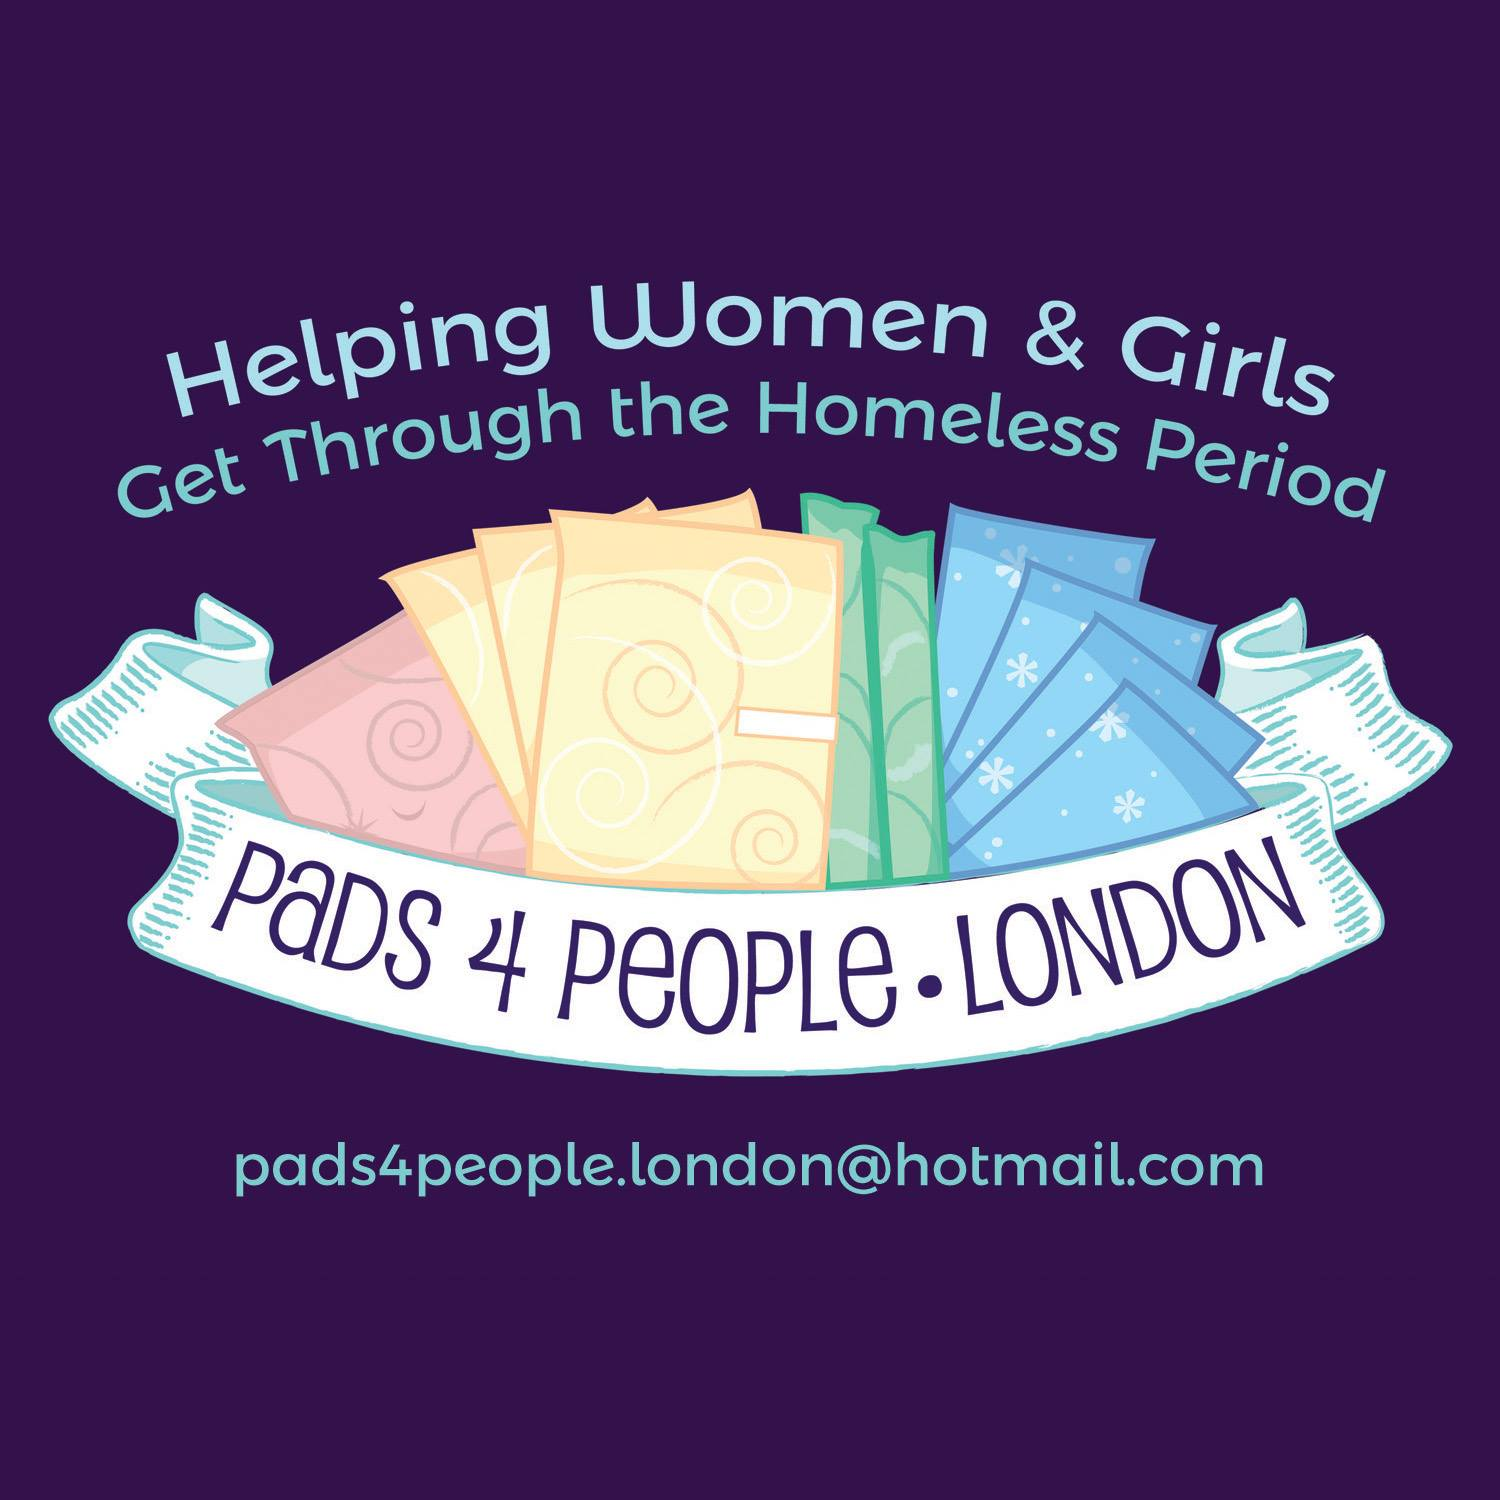 That time of the month is now: Pads 4 People